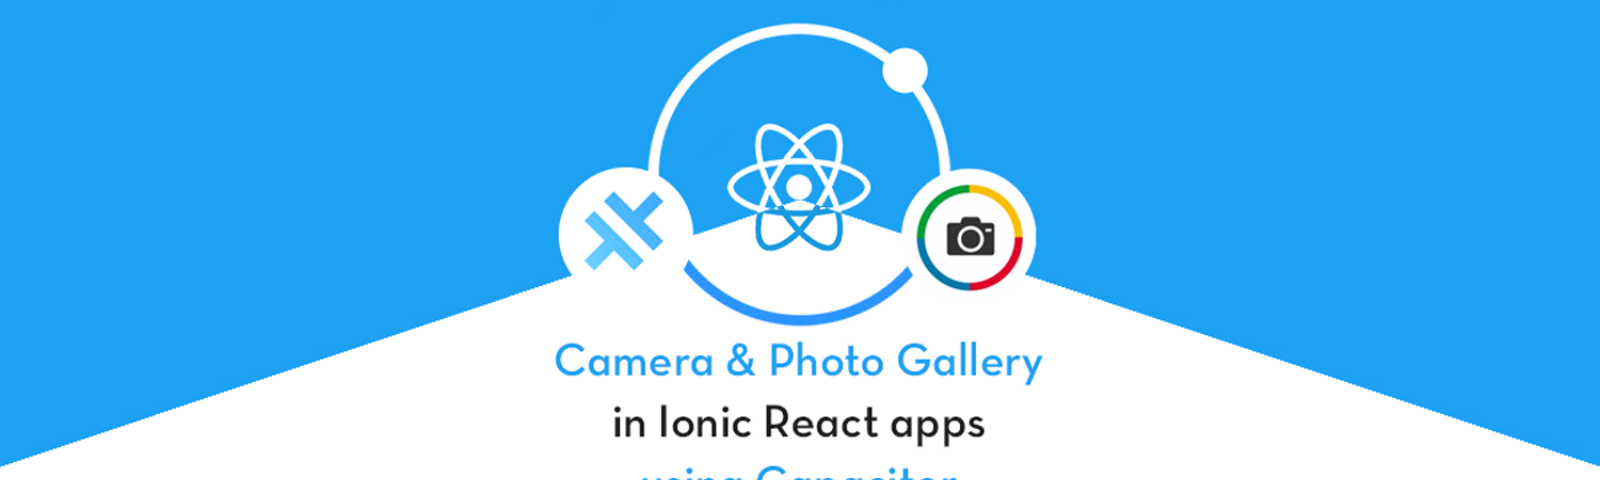 Camera and Photo Gallery in Ionic React app using Capacitor